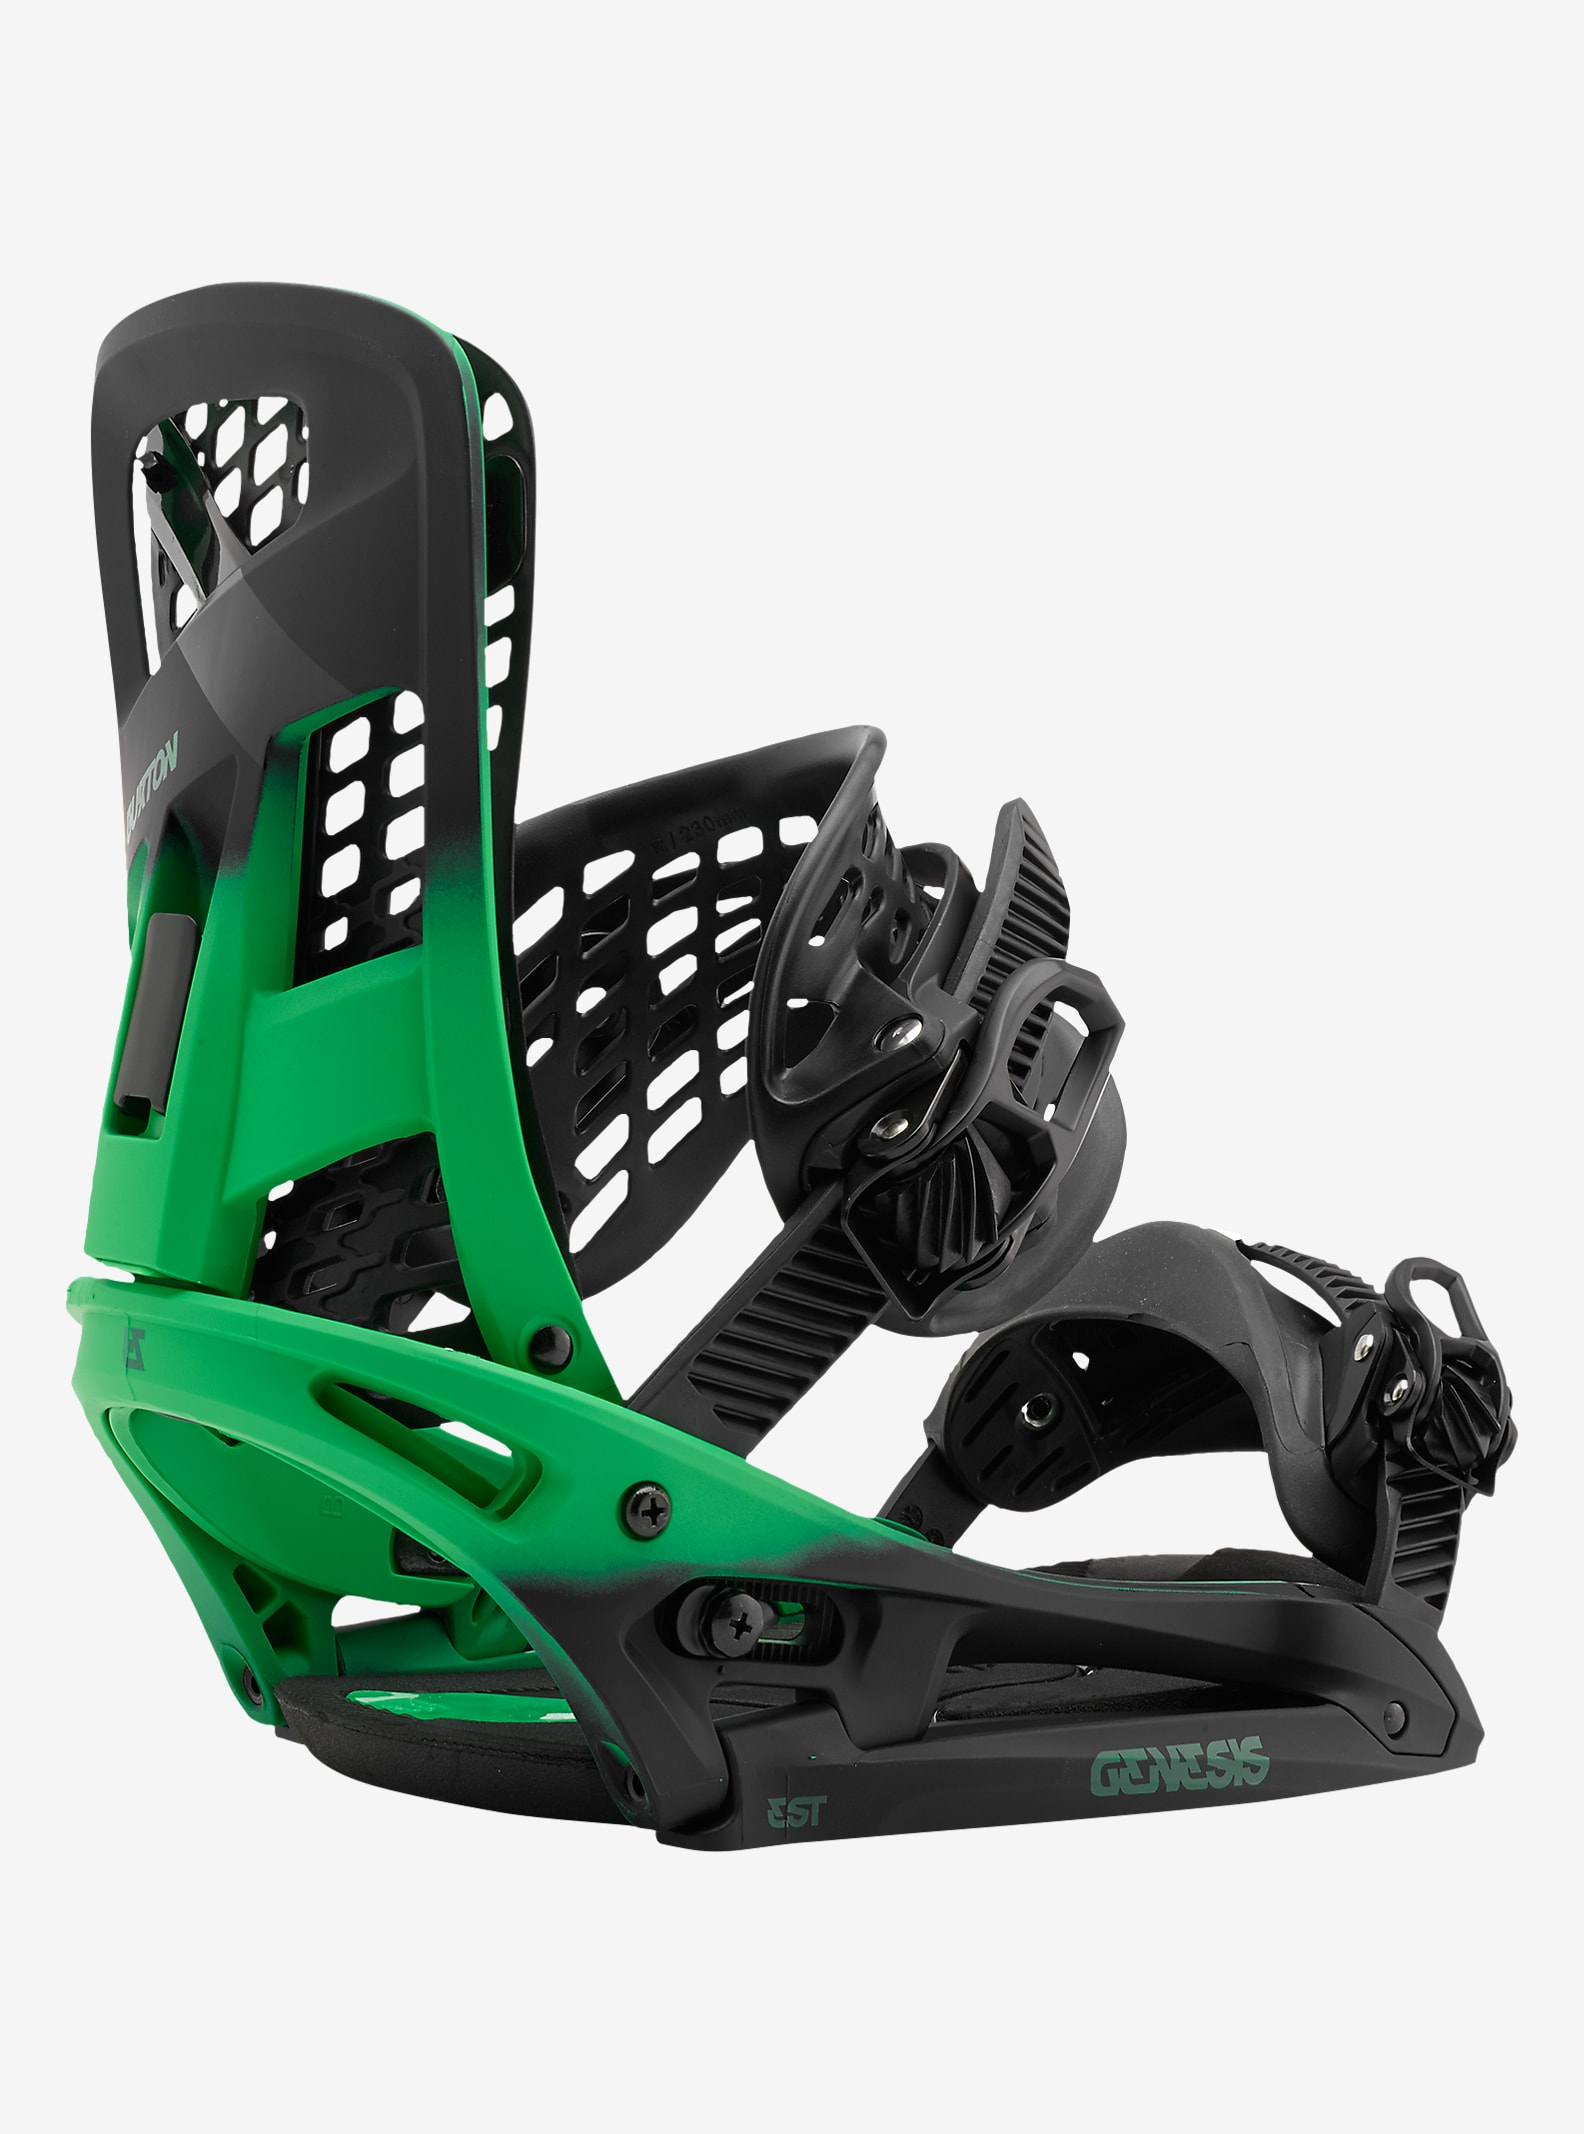 Burton Genesis EST Snowboard Binding shown in Green Fade